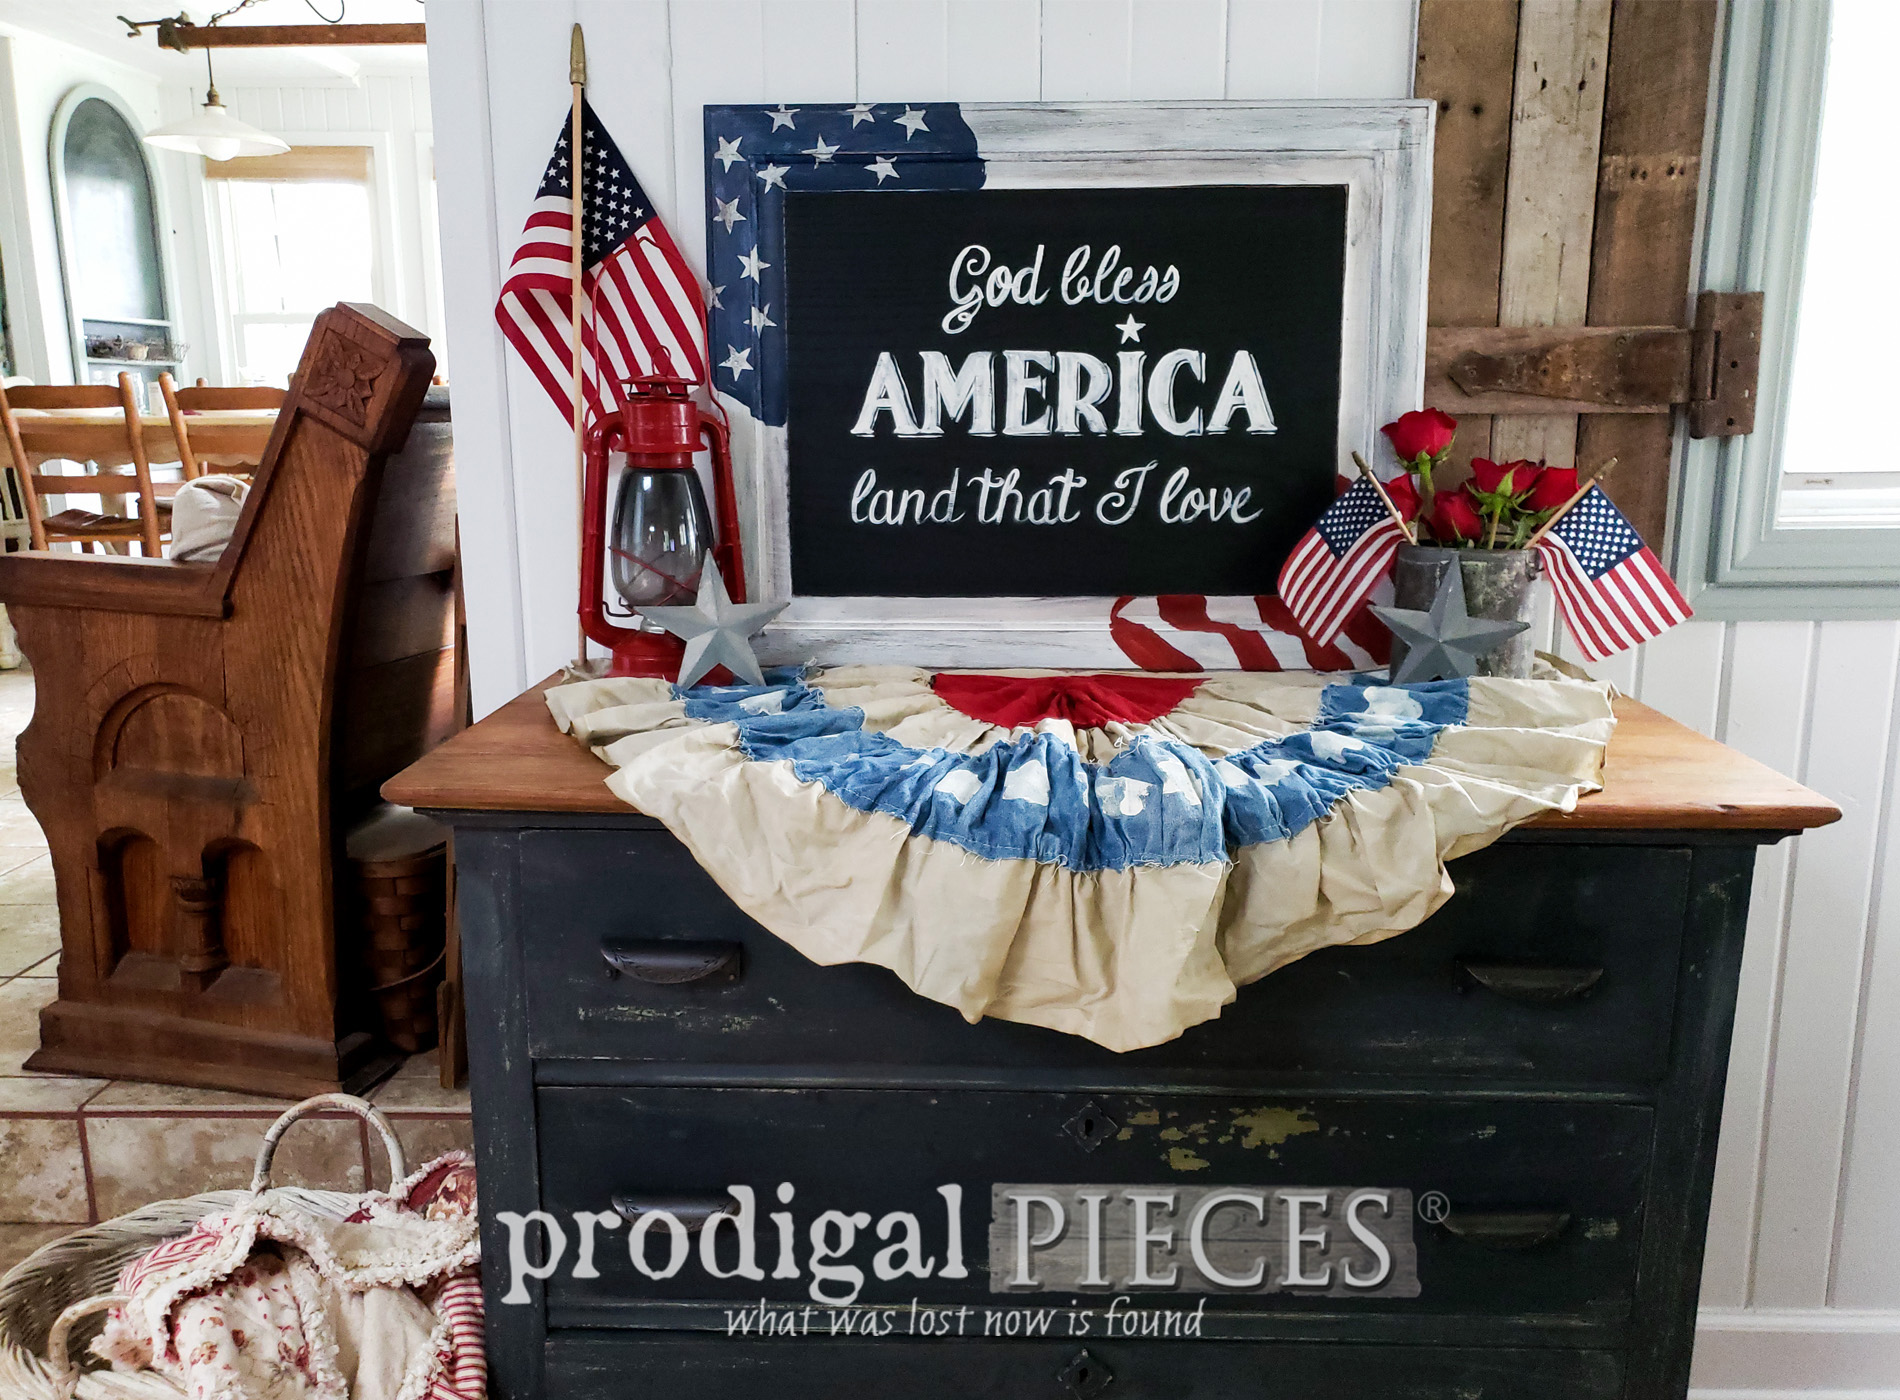 Featured DIY 4th of July Sign Created by a Cupboard Door | Video Tutorial by Larissa of Prodigal Pieces | Head to prodigalpieces.com #prodigalpieces #diy #home #homedecor #farmhouse #4thofjuly #independenceday